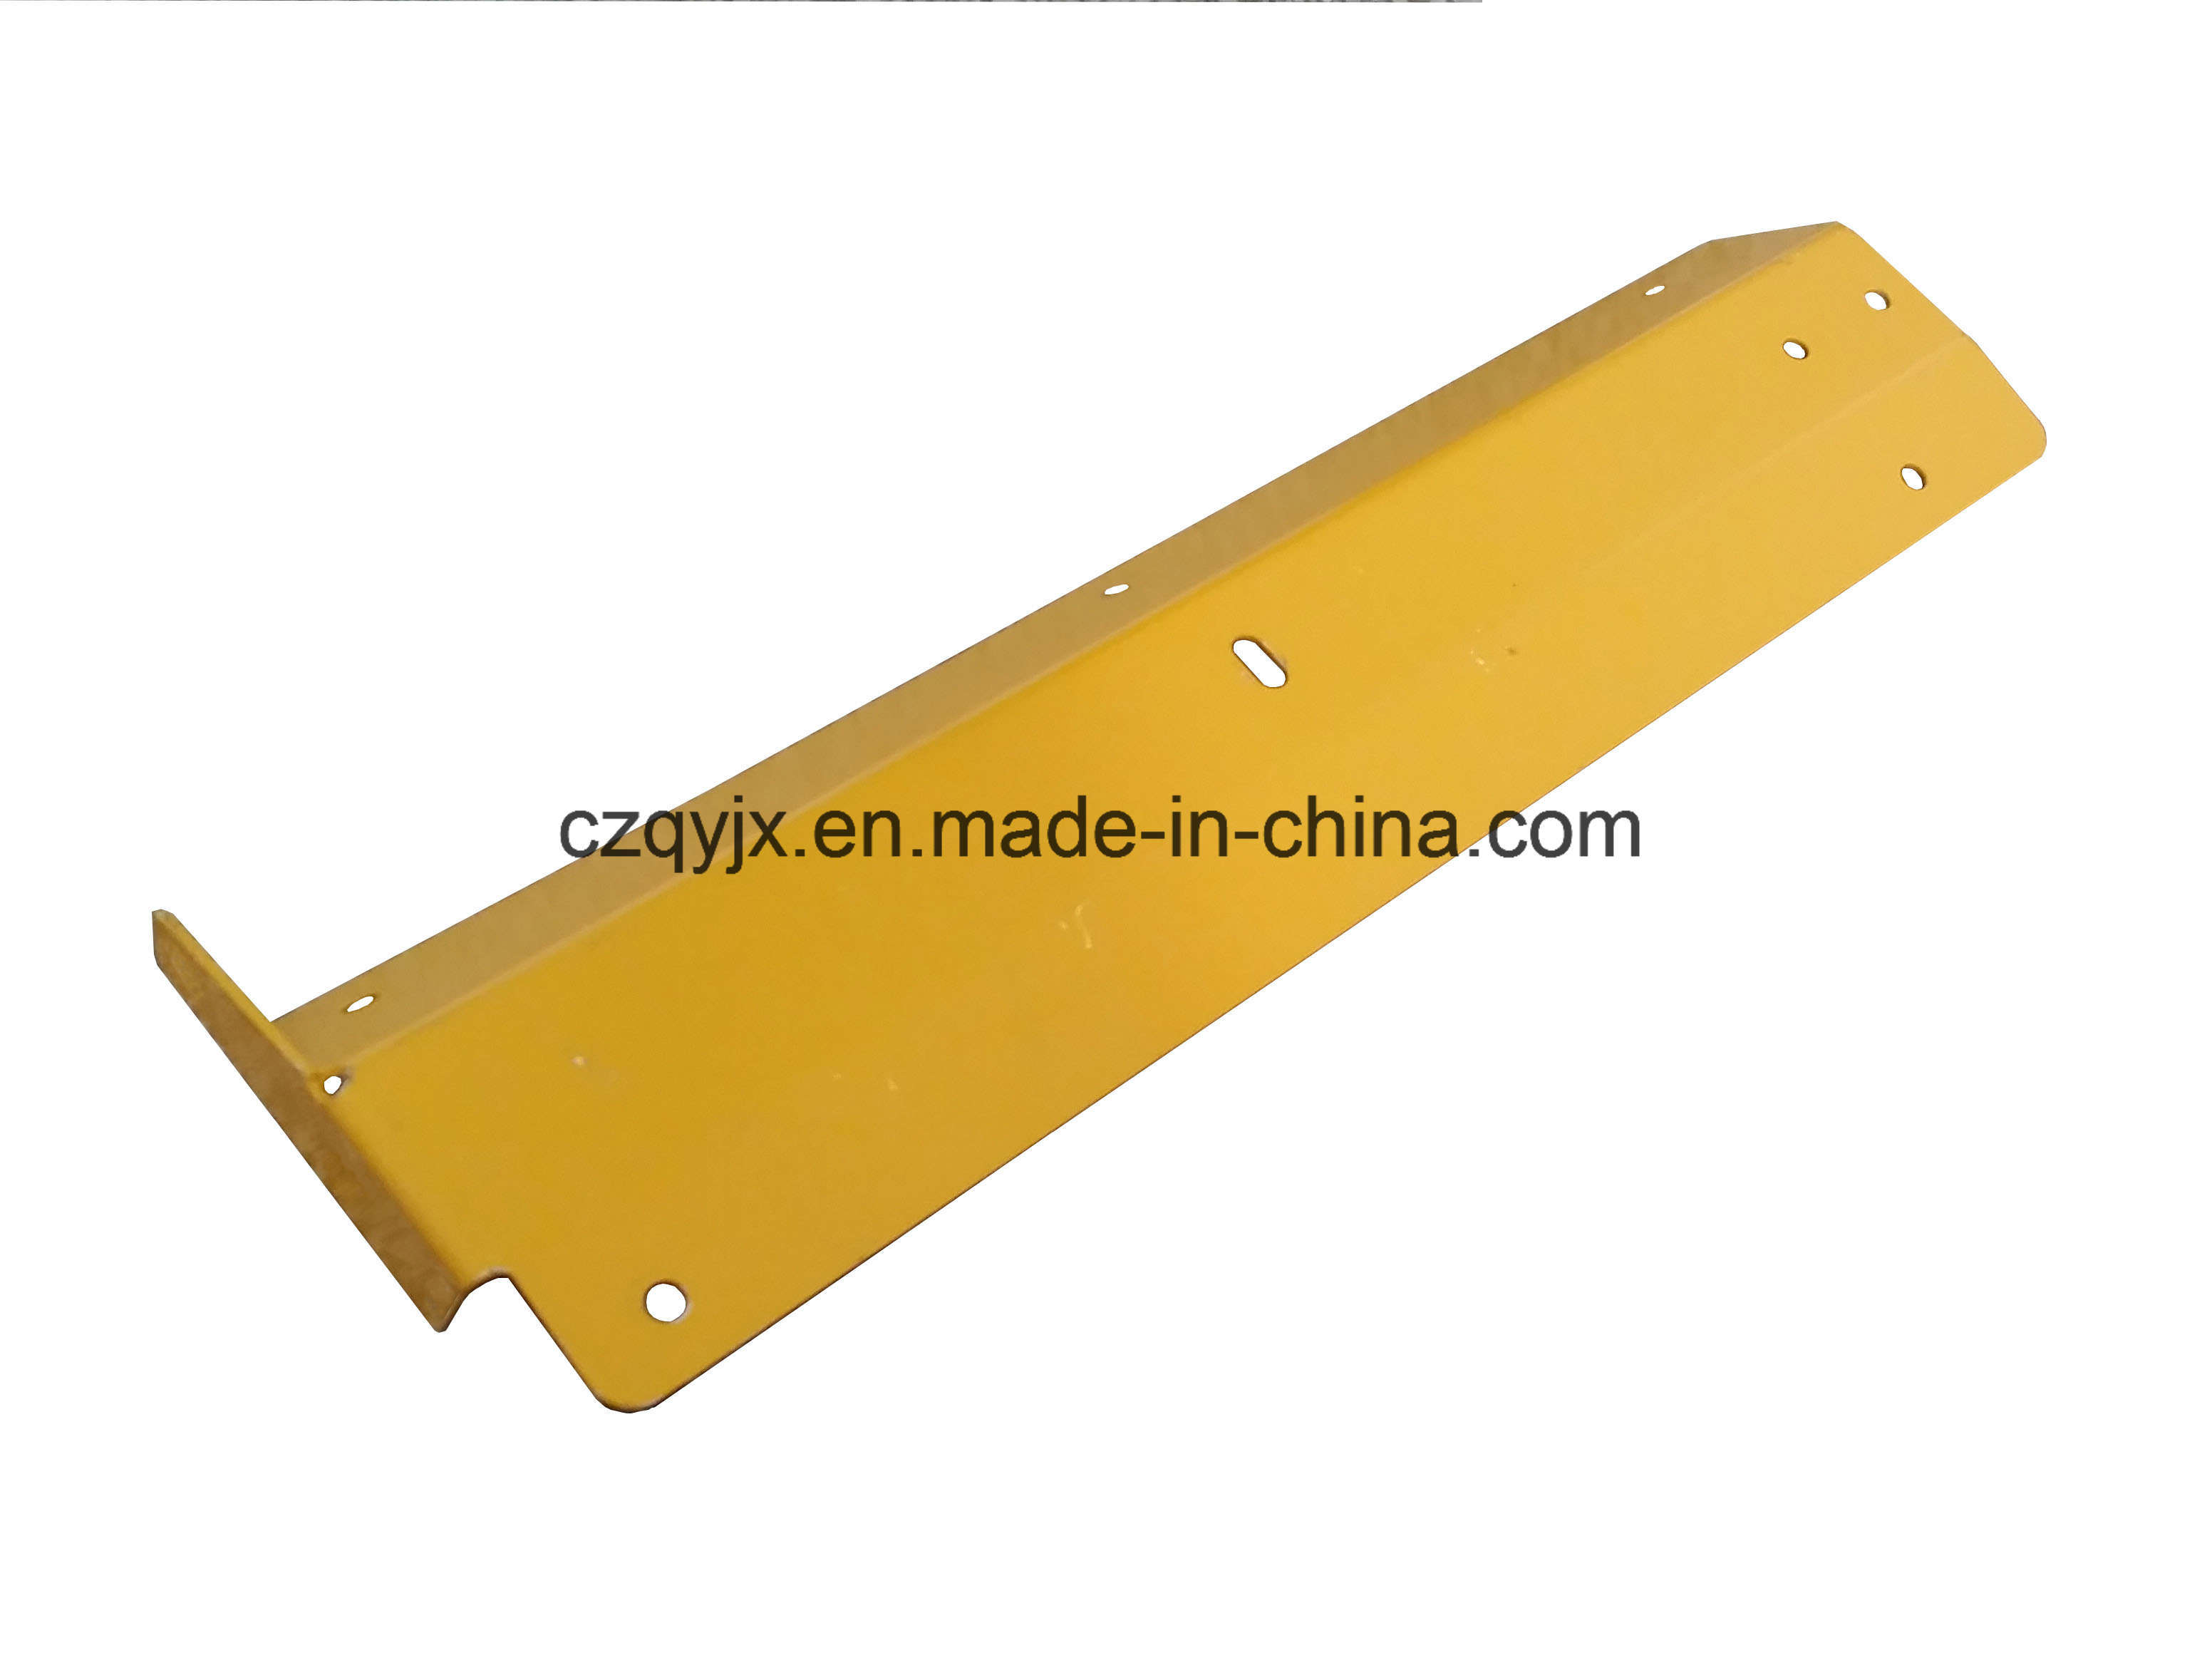 Customized OEM Metal Bending Part